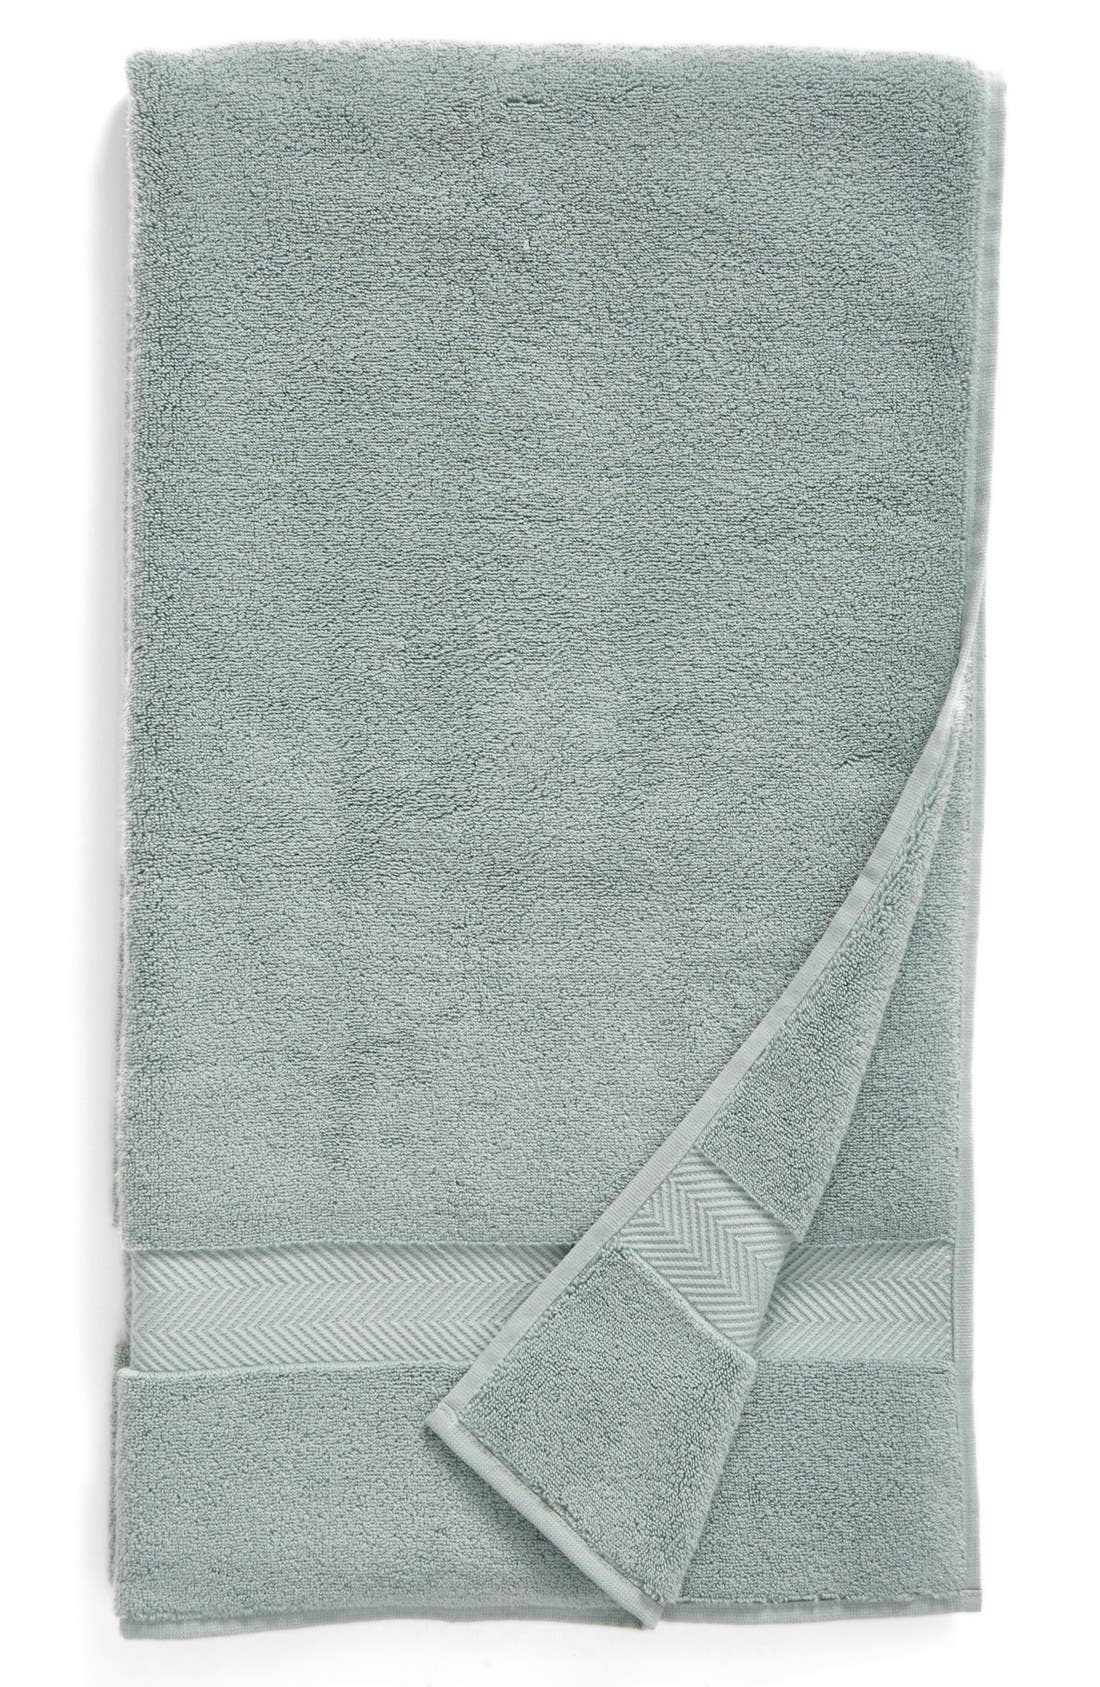 Nordstrom at Home Hydrocotton Bath Towel